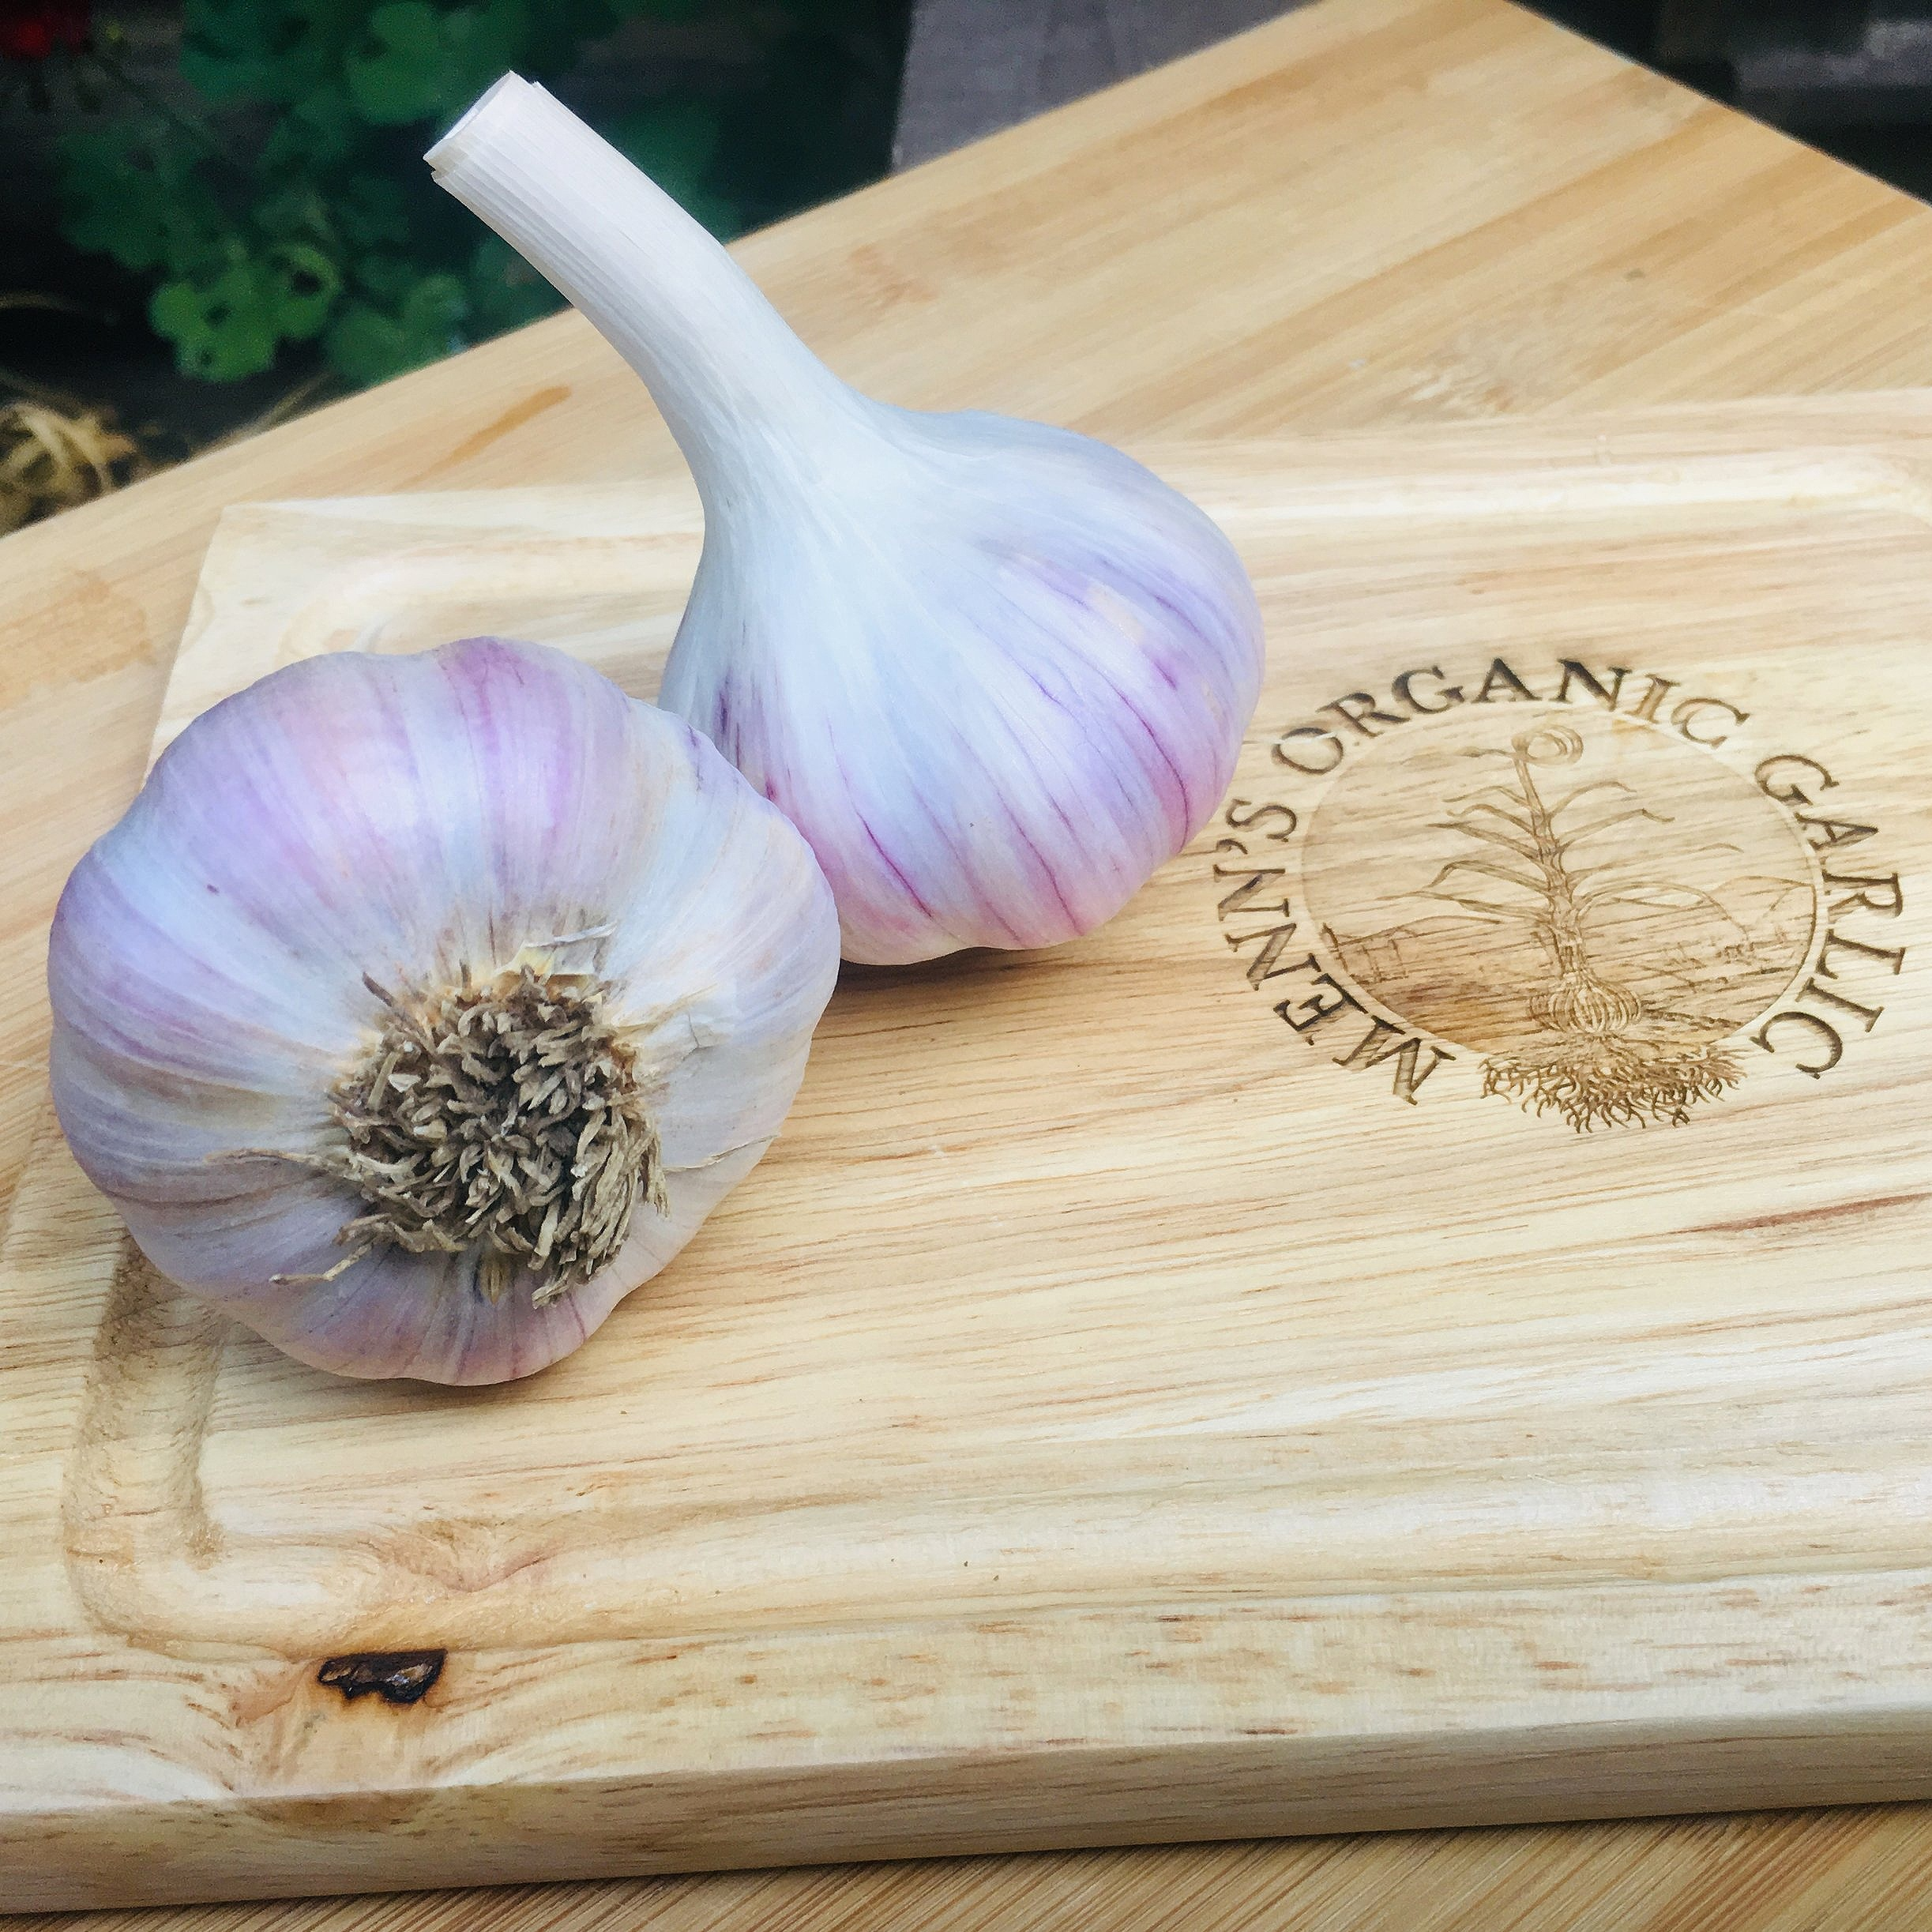 Pehoski Purple (Sold out) - A large purple stripe hardneck that has a hot flavor raw, which becomes mild and earthy when cooked. A great all purpose garlic that can be used for roasting, baking and sauteing.